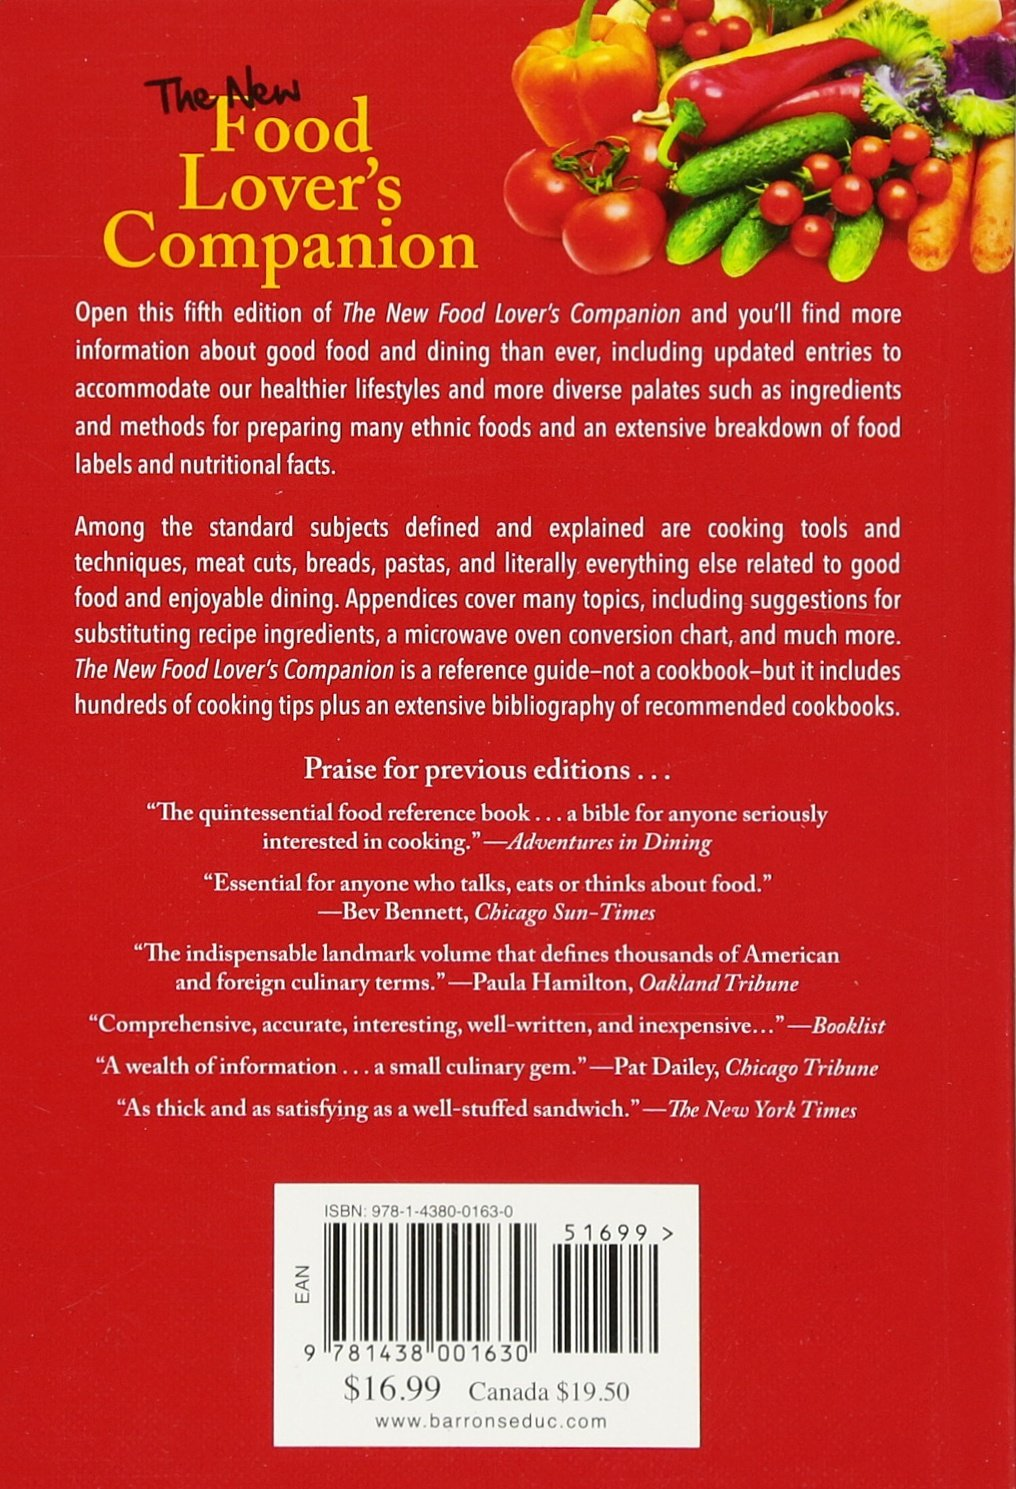 The new food lovers companion ron herbst sharon tyler herbst the new food lovers companion ron herbst sharon tyler herbst 9781438001630 amazon books forumfinder Gallery